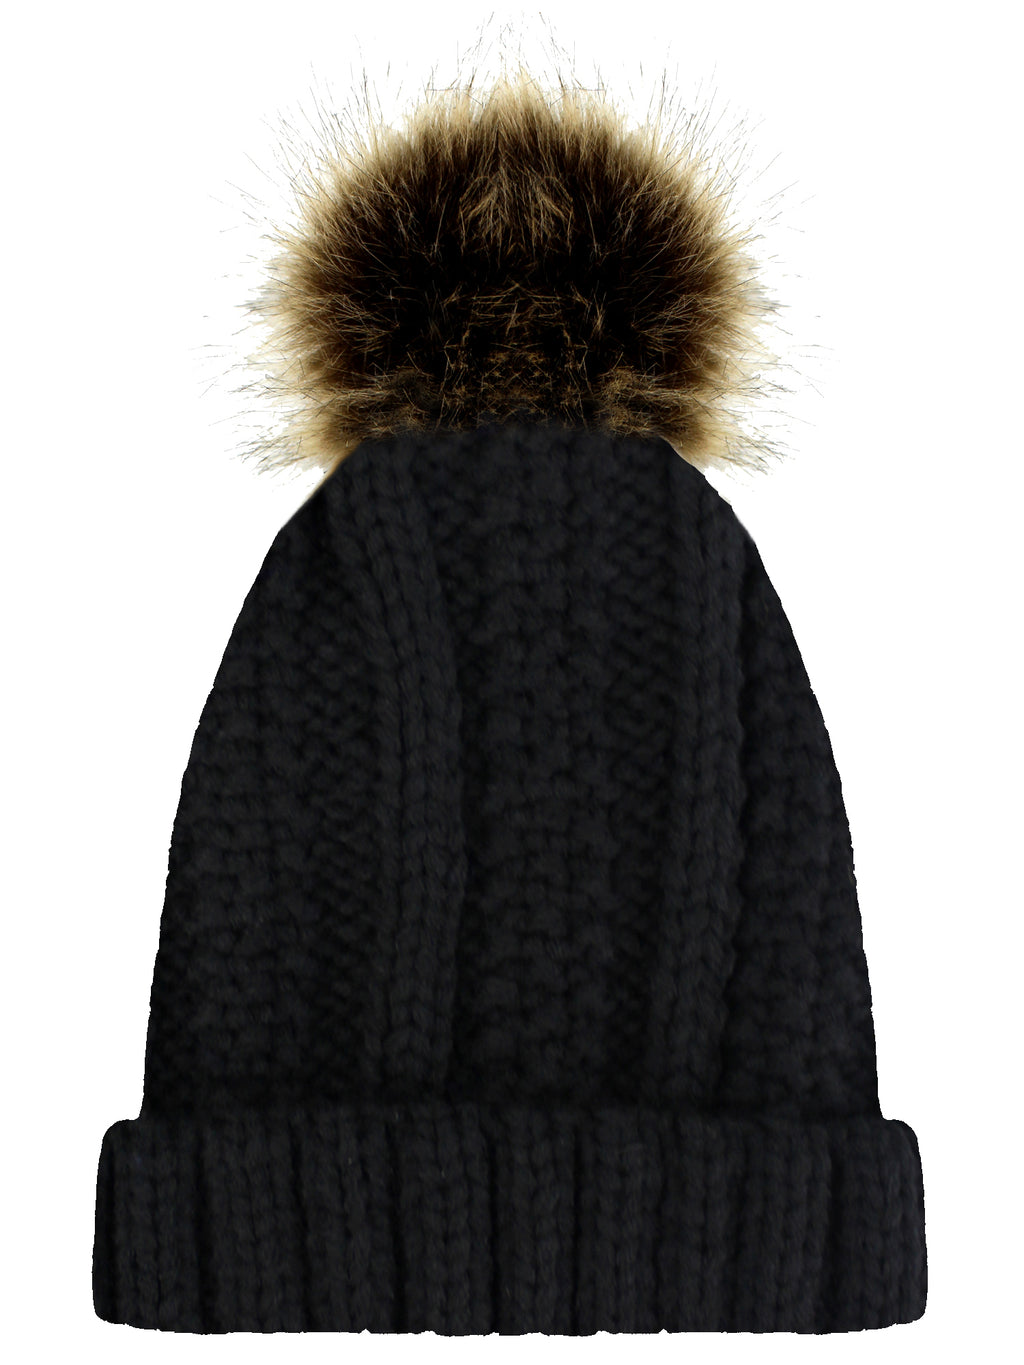 Black Ribbed Beanie Cap With Fur Pom Pom